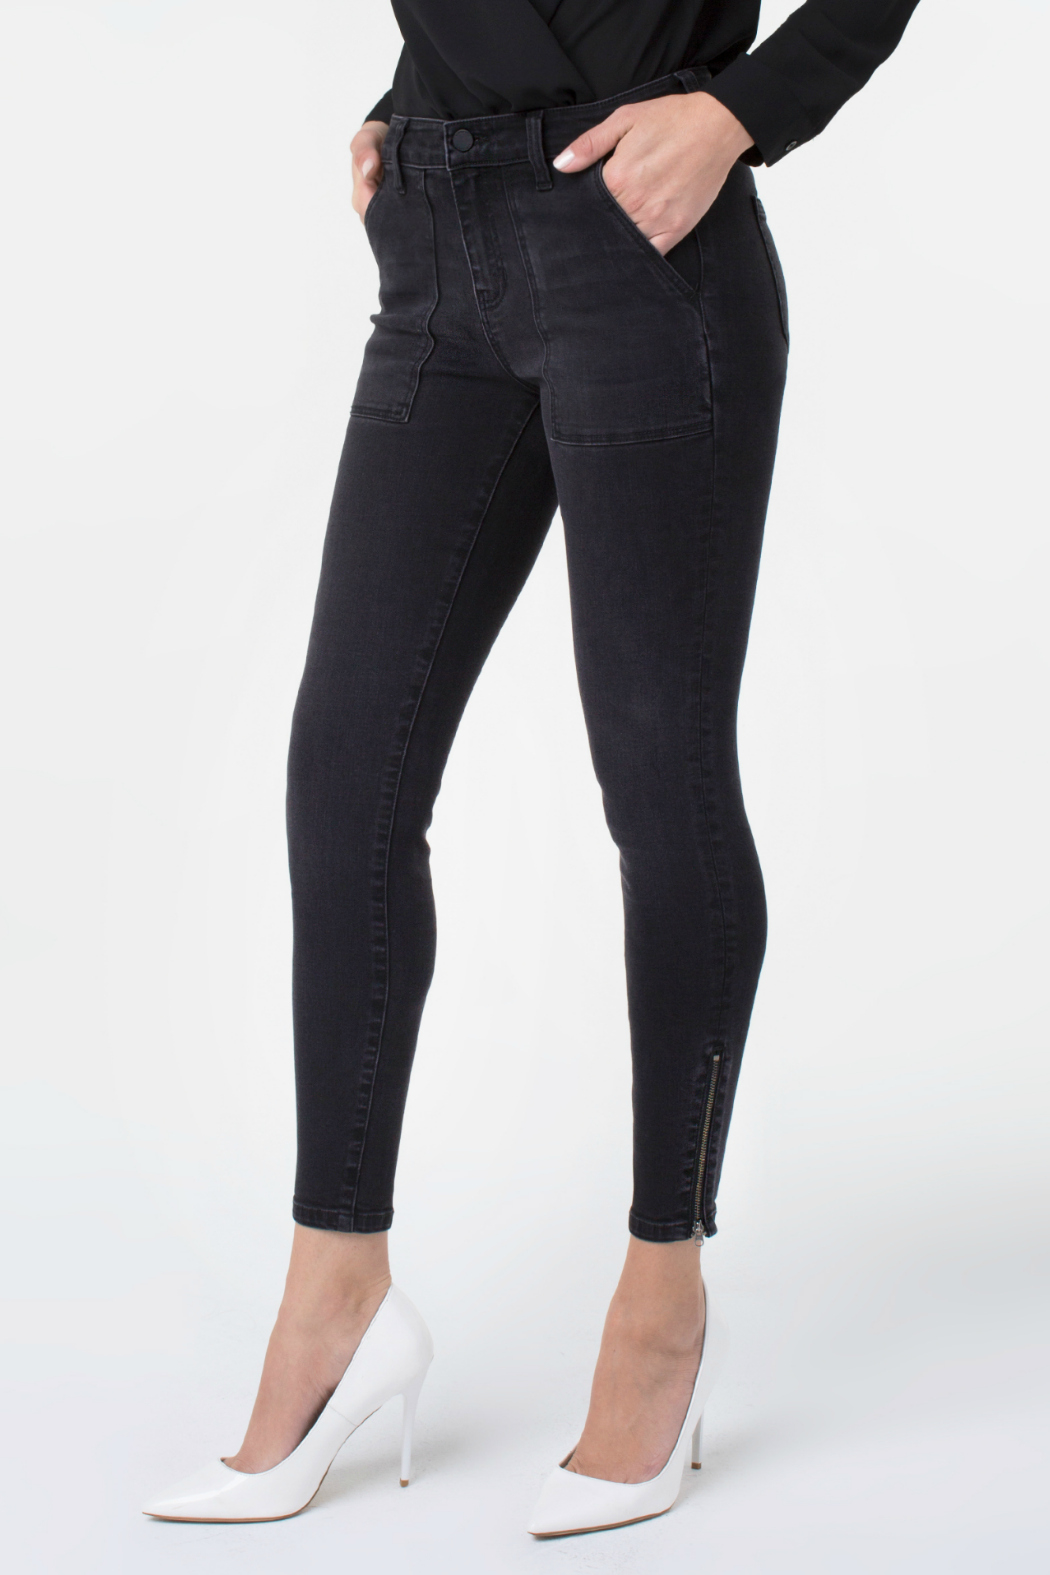 Liverpool Jeans Company Abby ankle zip 27